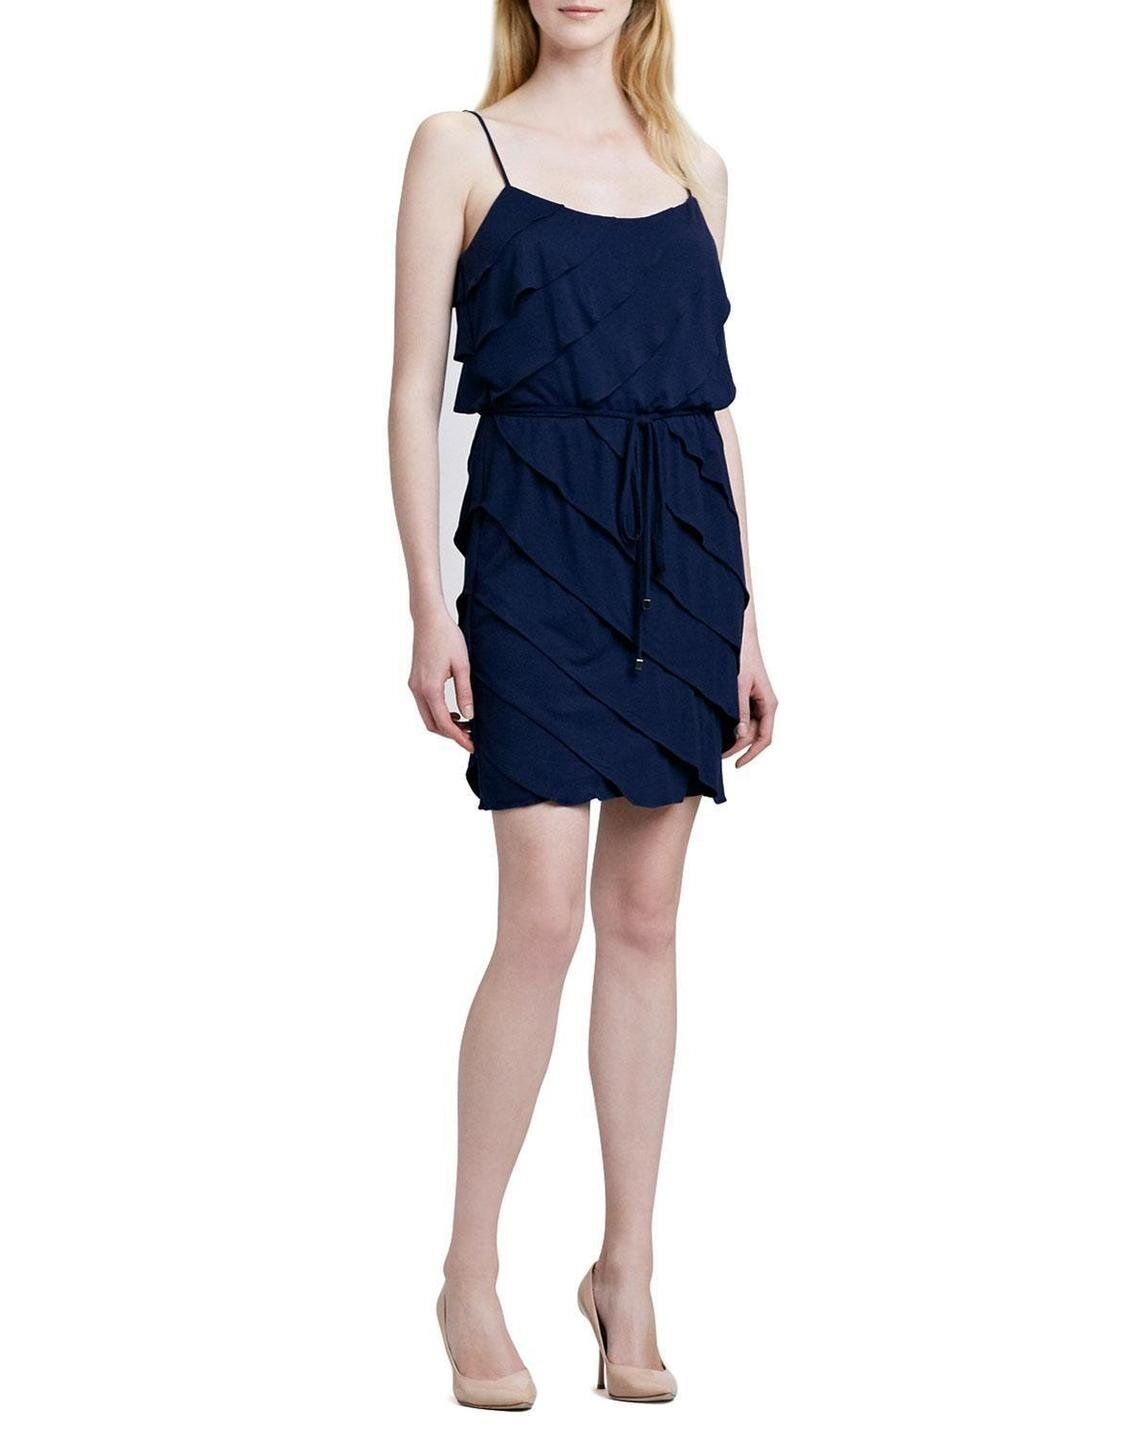 LAUNDRY  NEW Sexy Blau Spaghetti Straps Ruffled Tierot Belted Dress M QCO